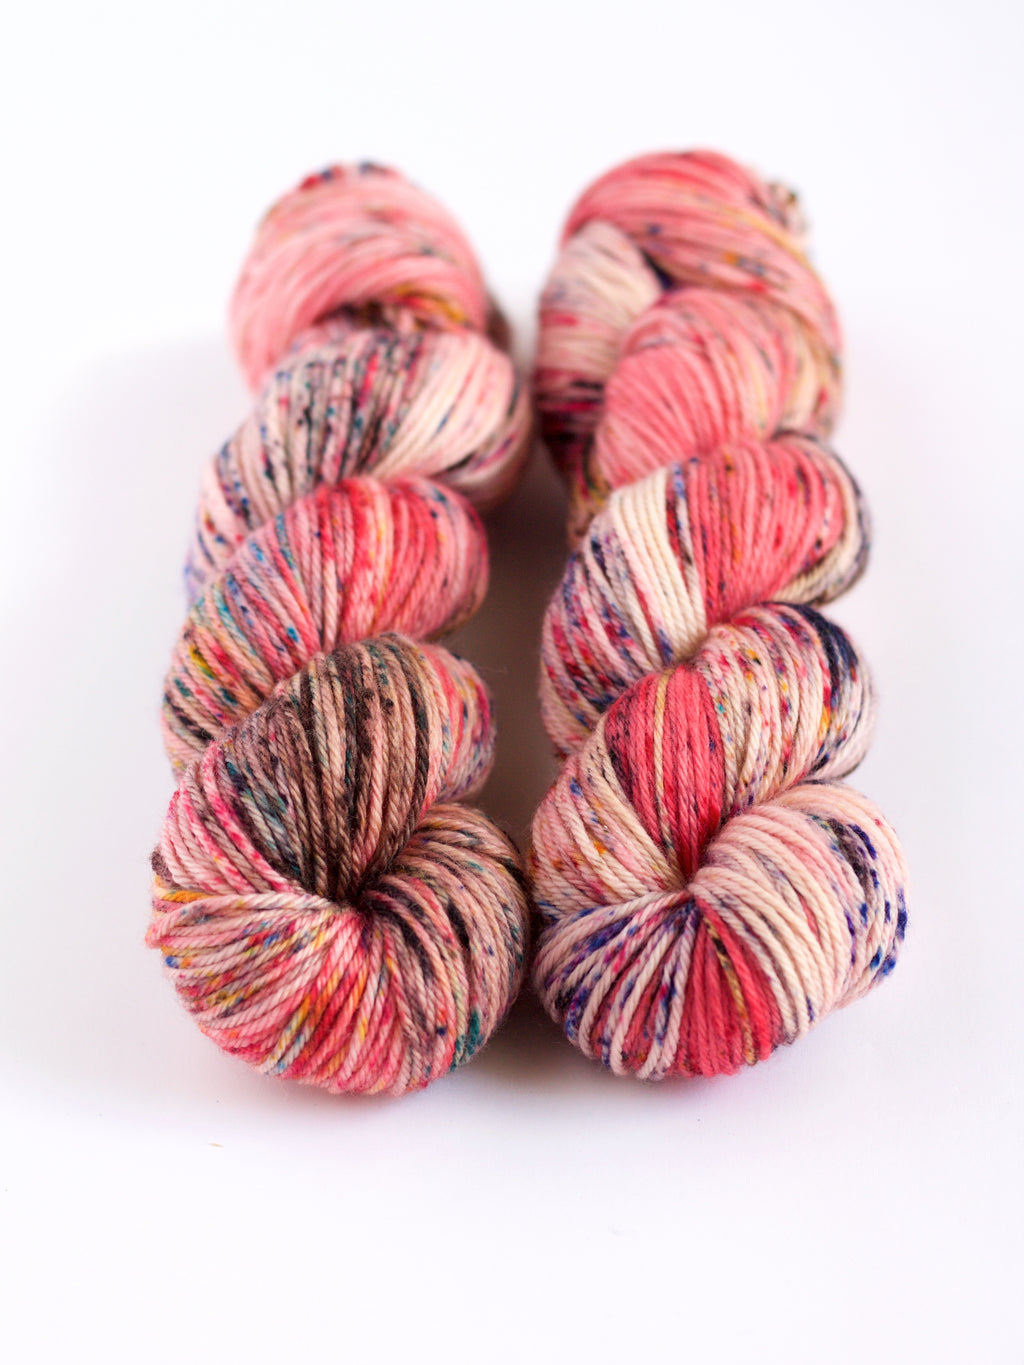 OOAK REBELLIOUS STREAK | Quartet Worsted